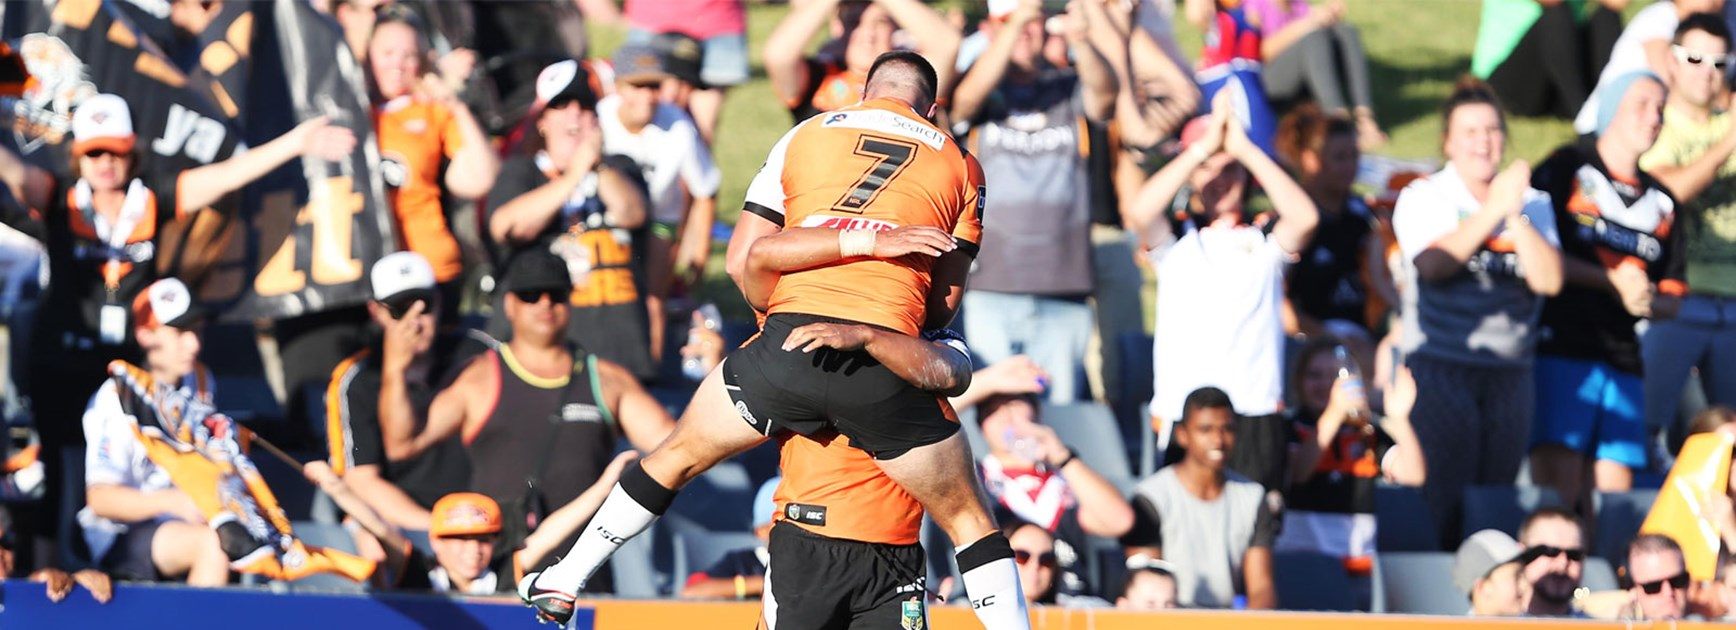 The Wests Tigers put on a show against the Warriors in Round 1.